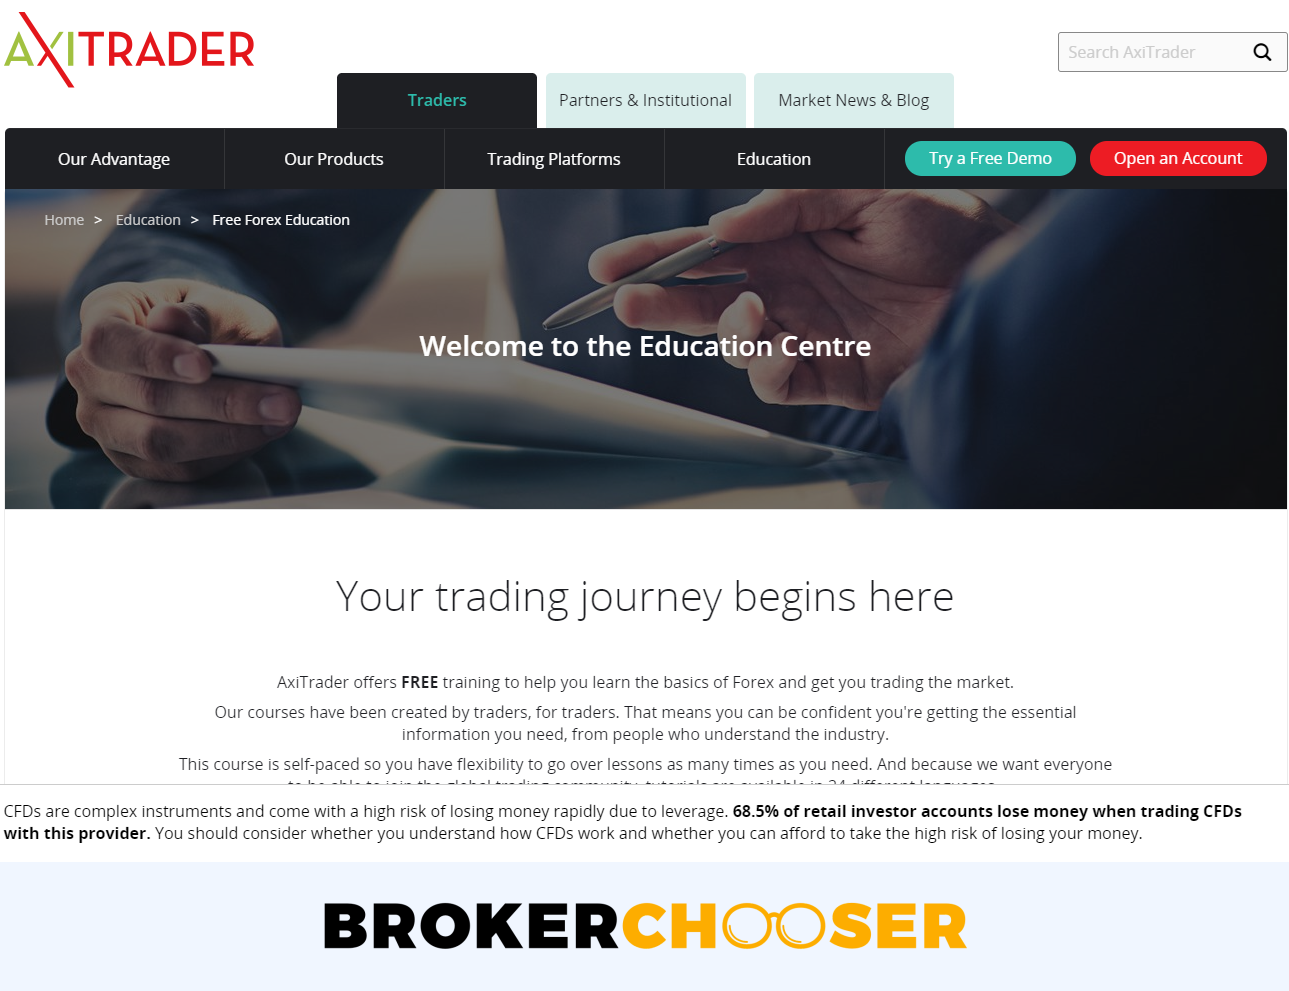 AxiTrader review - Education